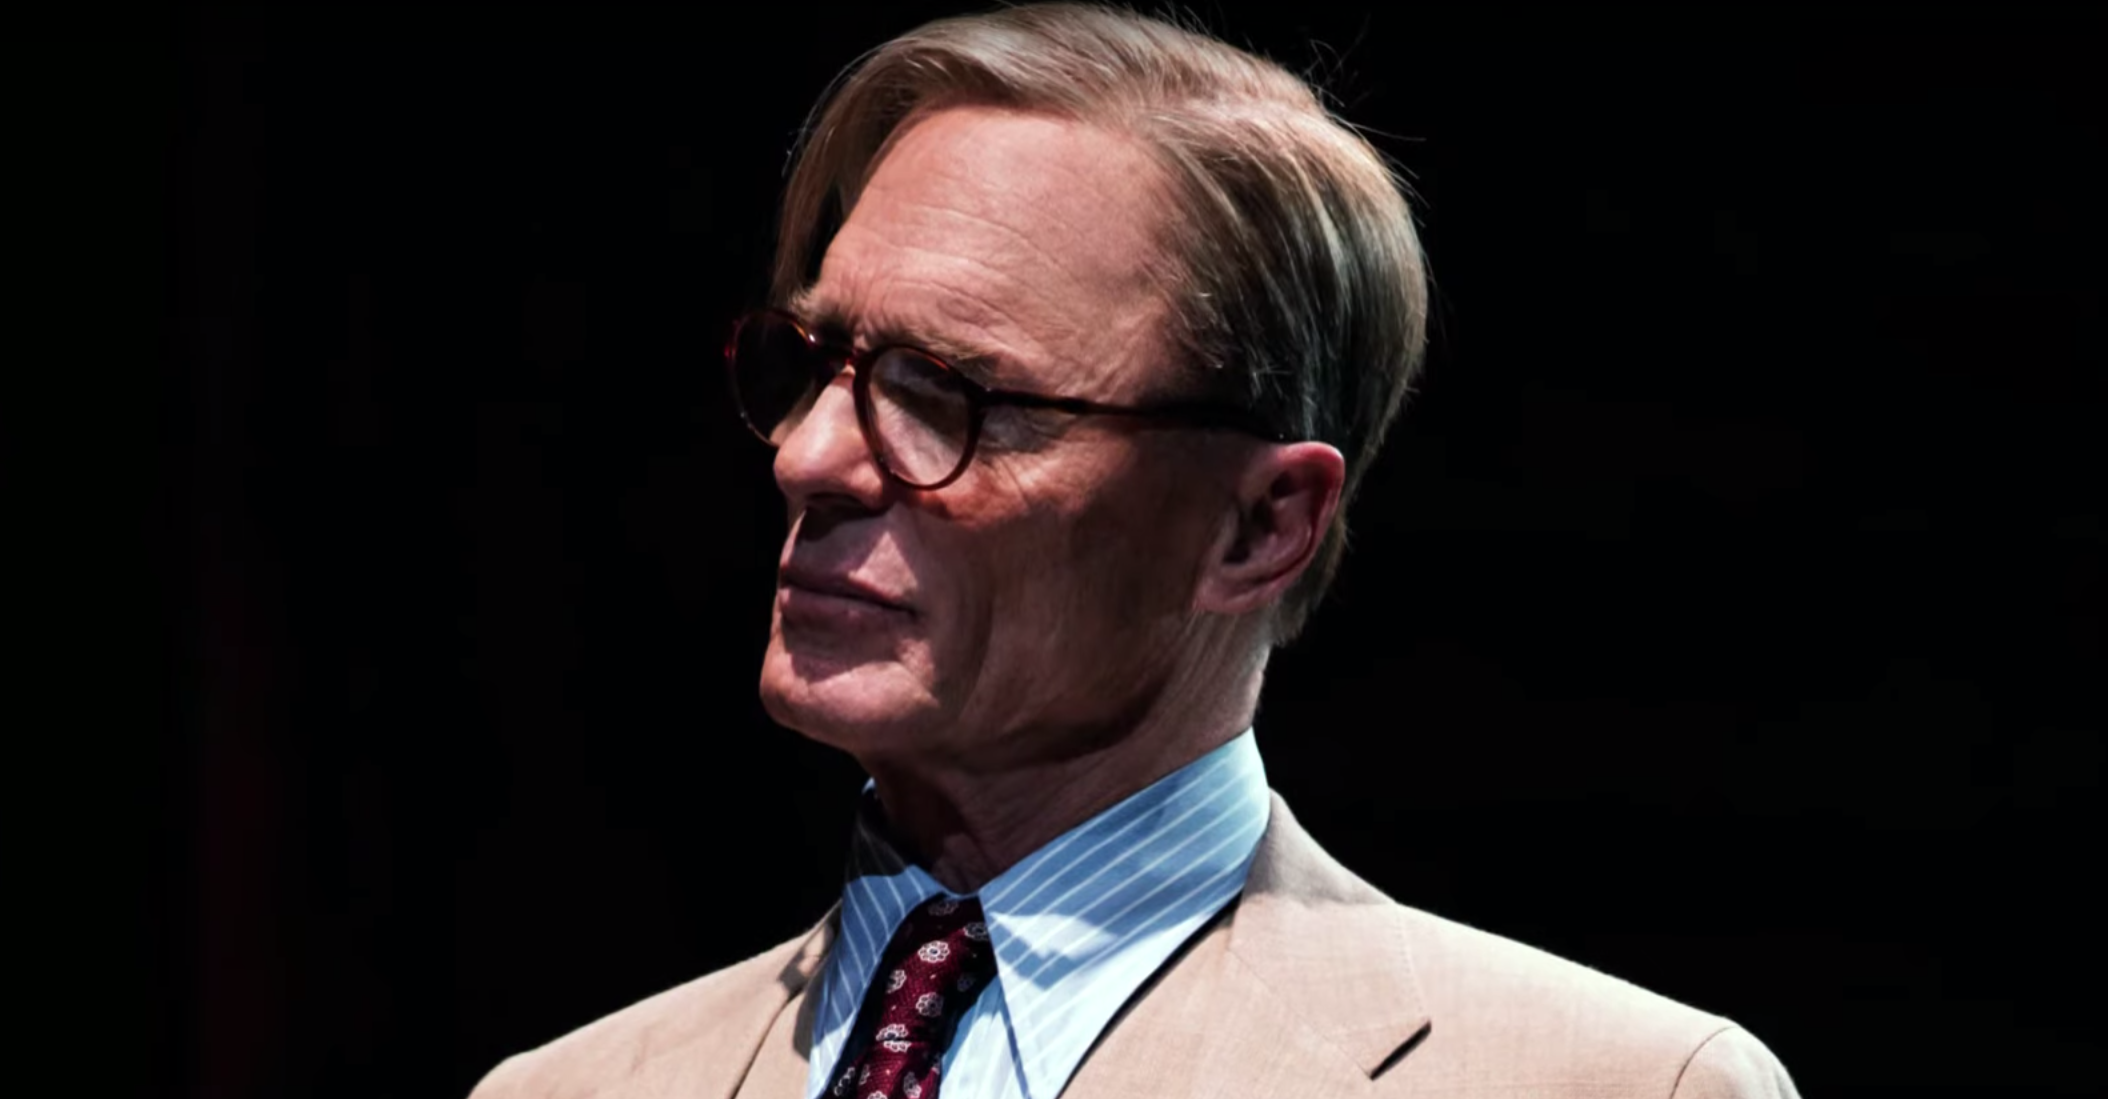 Ed Harris on Putting His Own Spin on Atticus Finch in Broadway's To Kill a Mockingbird